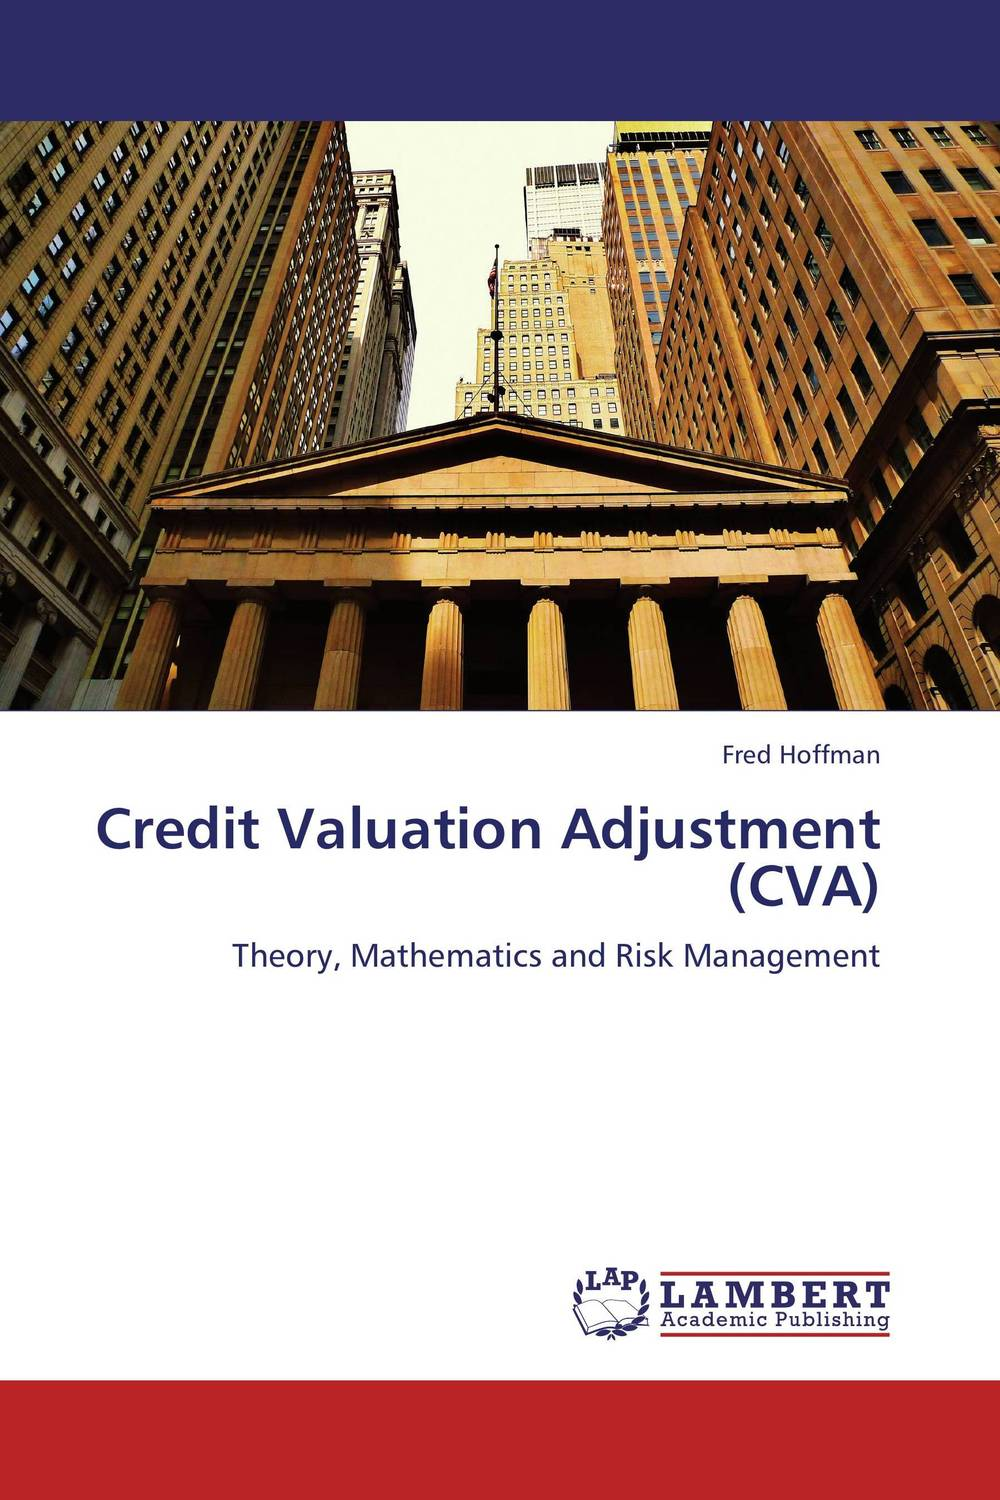 Credit Valuation Adjustment (CVA) jon gregory counterparty credit risk and credit value adjustment a continuing challenge for global financial markets